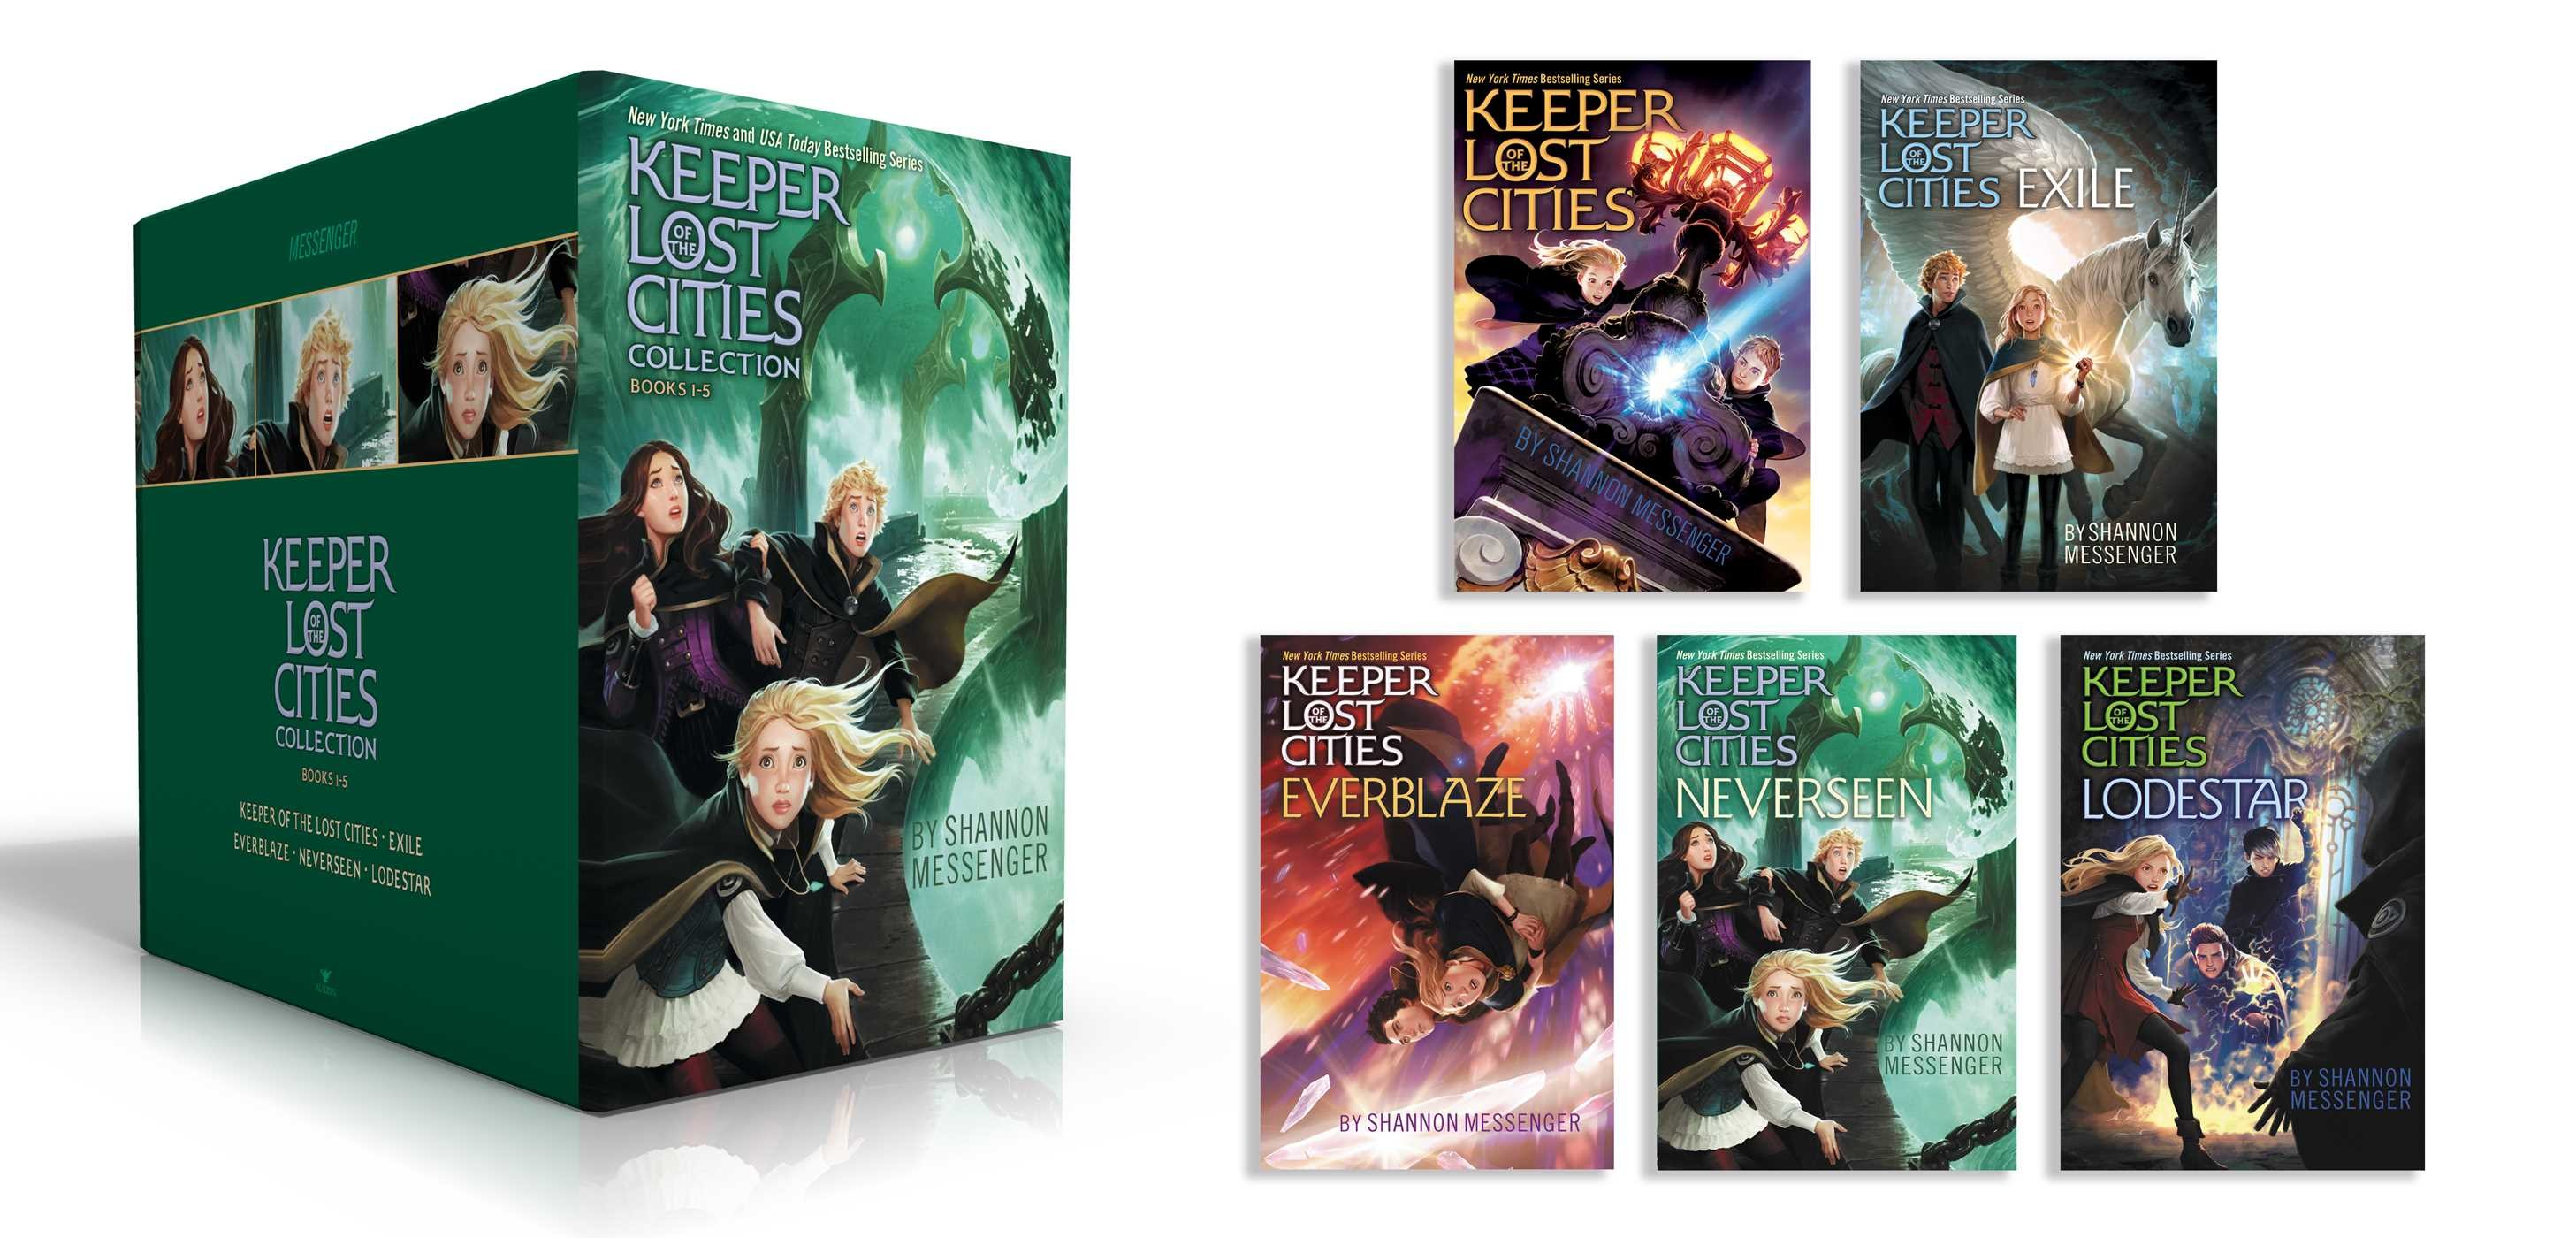 Keeper of the lost cities collection books 1 5 9781534428508.in01